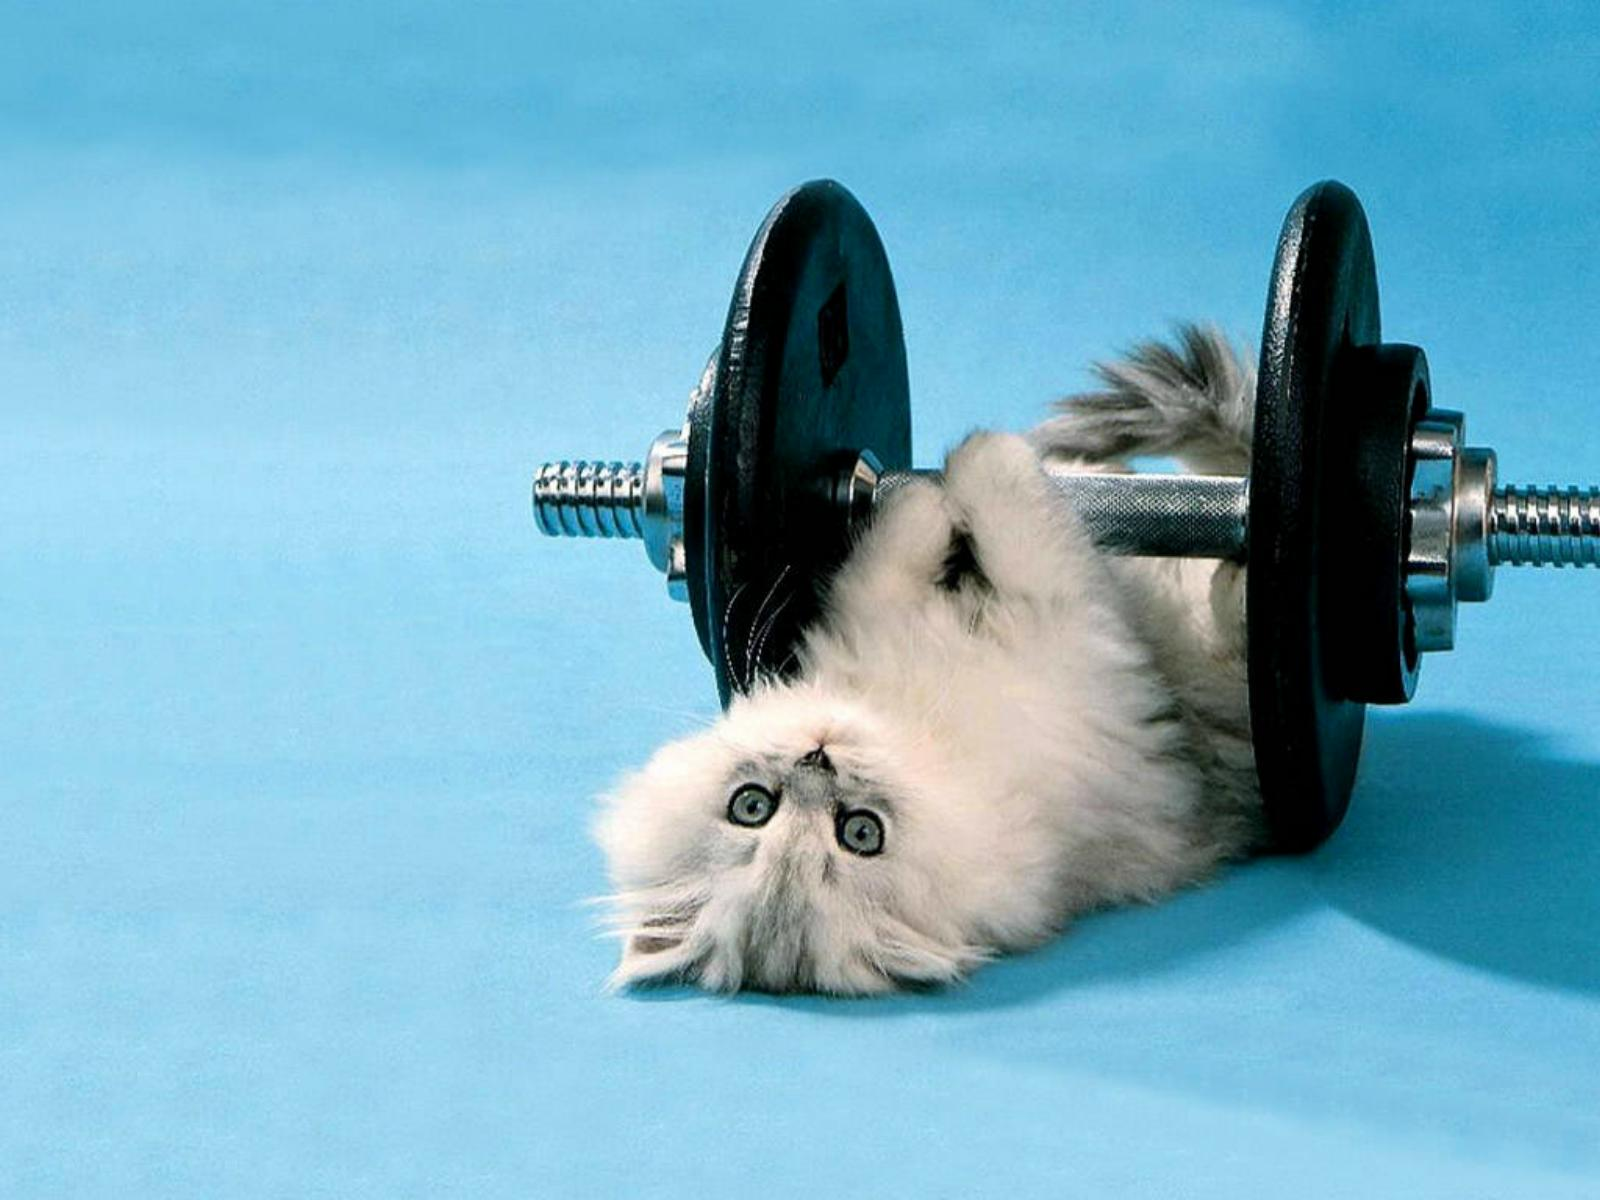 Funny-Kitten-Lifting-Weights.jpg